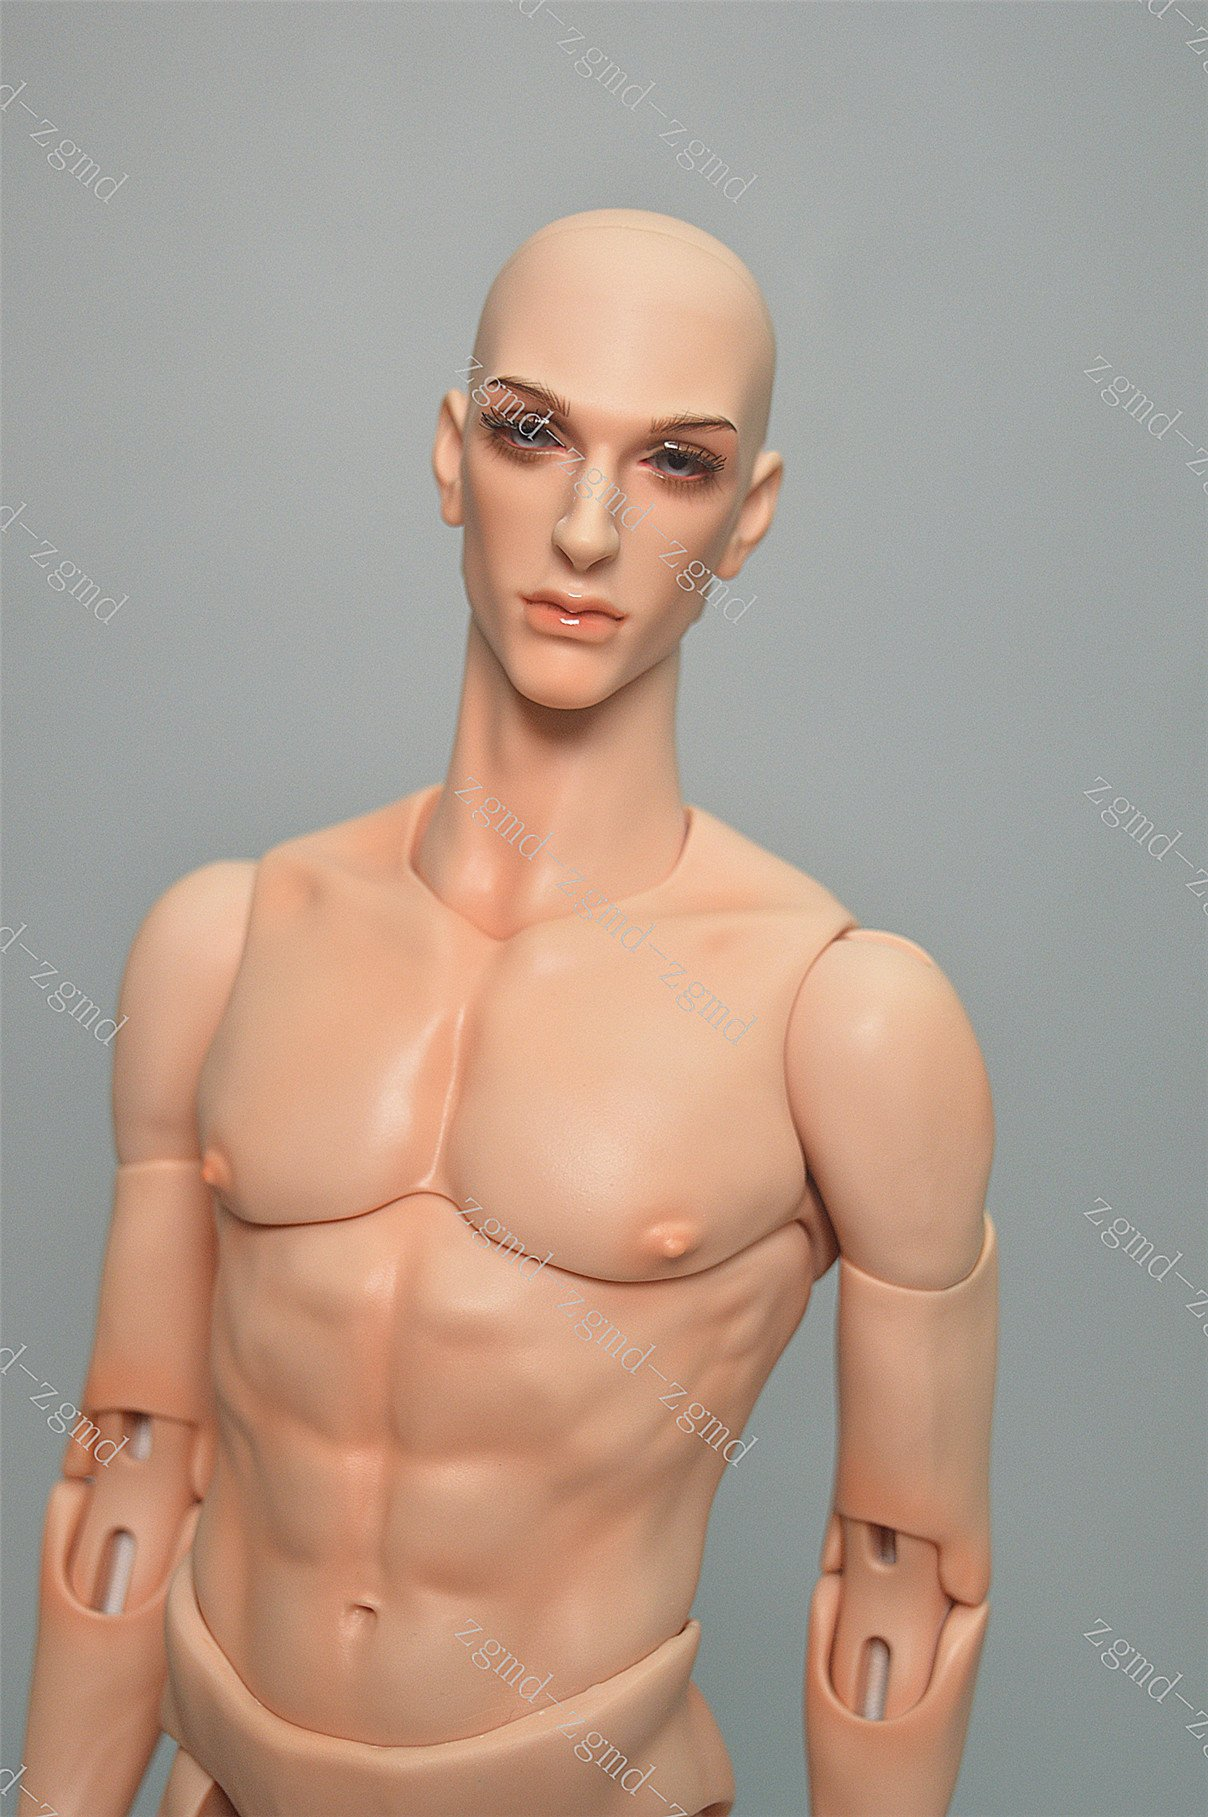 Zgmd 1/4 BJD doll SD doll Philips full male doll contains face make up by Zgmd (Image #3)